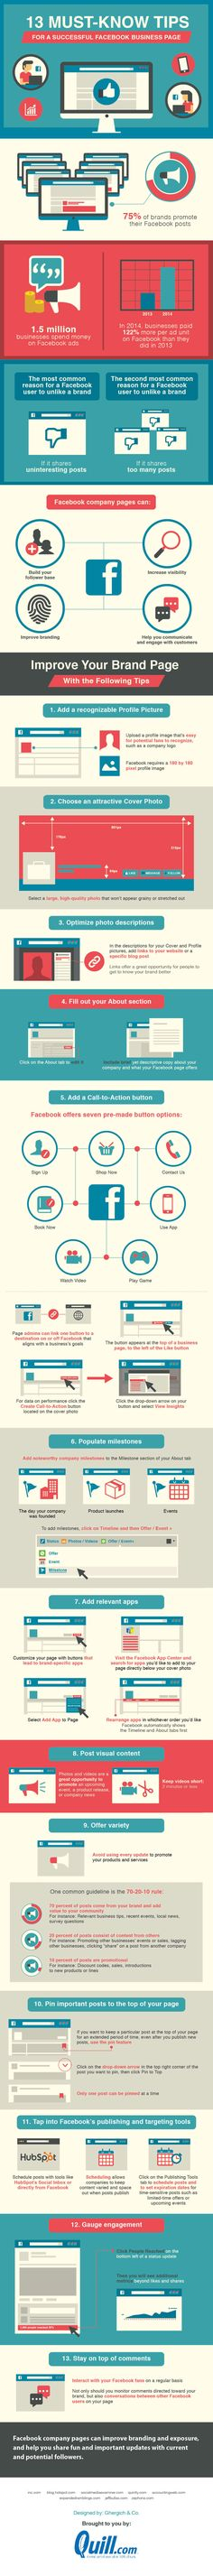 How to Create a Successful Facebook Business Page [Infographic]